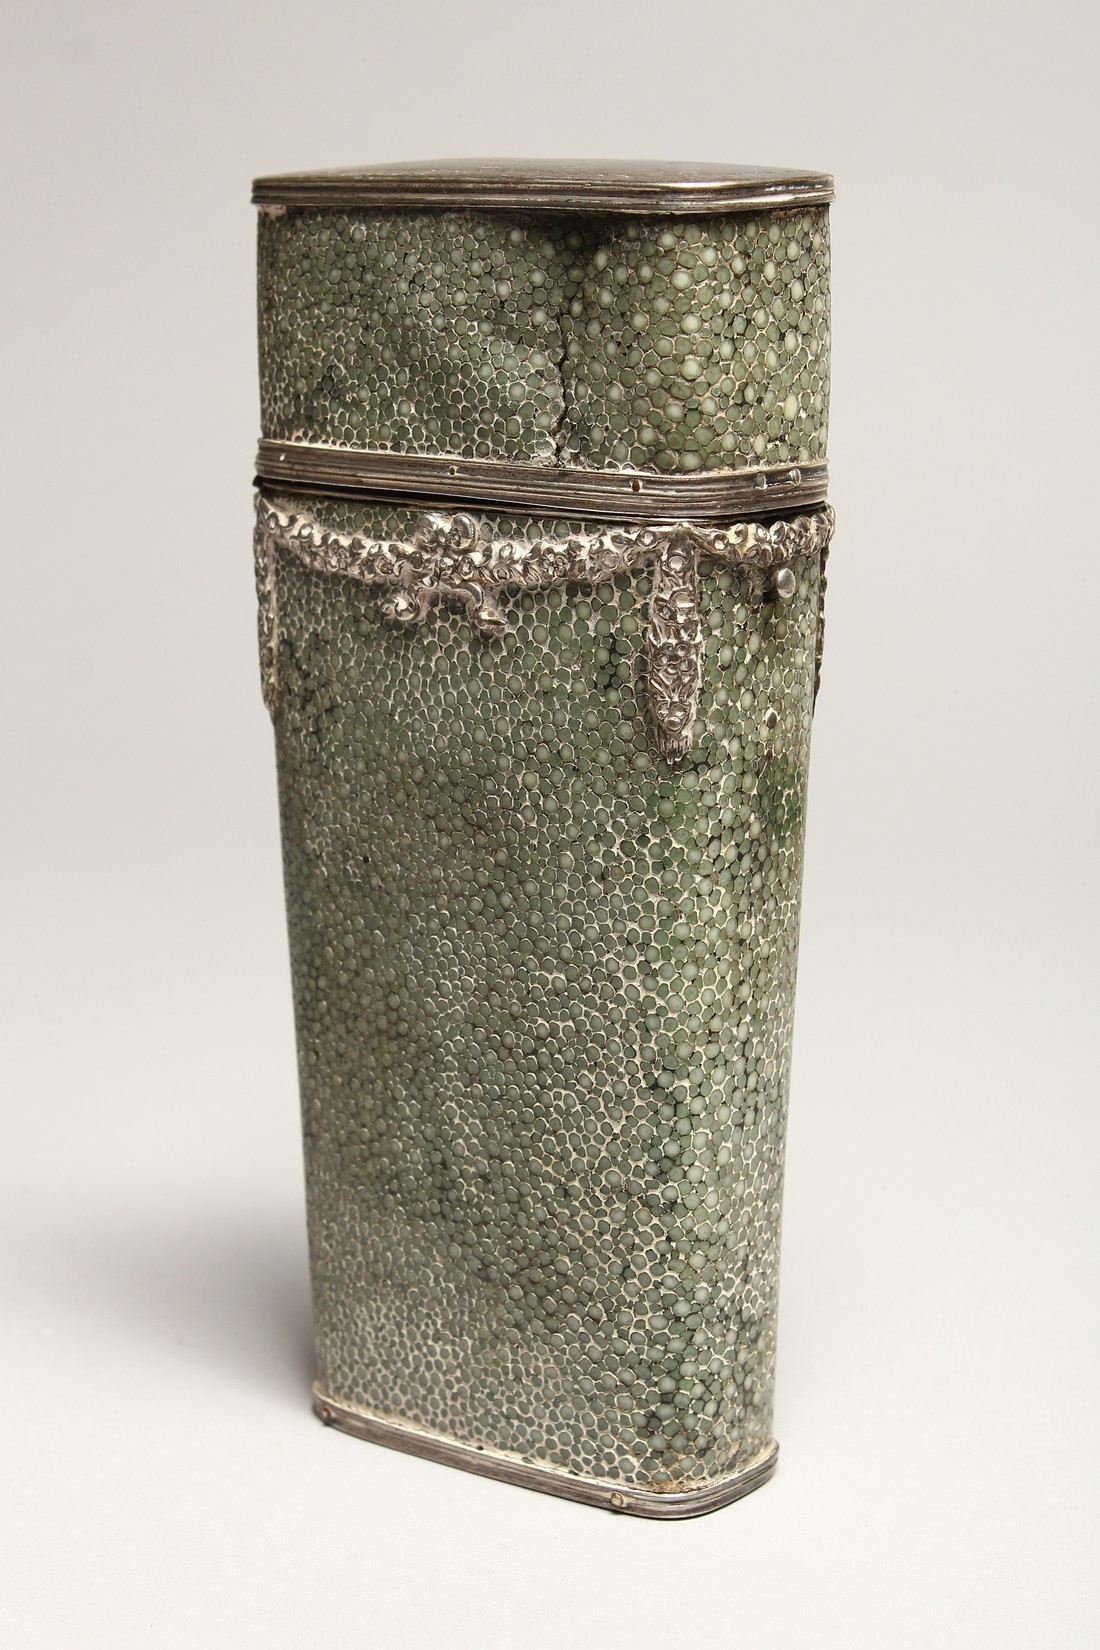 A GEORGIAN WHISKY FLASK in a shagreen case, with silver garlands 6.5ins long (some damage).